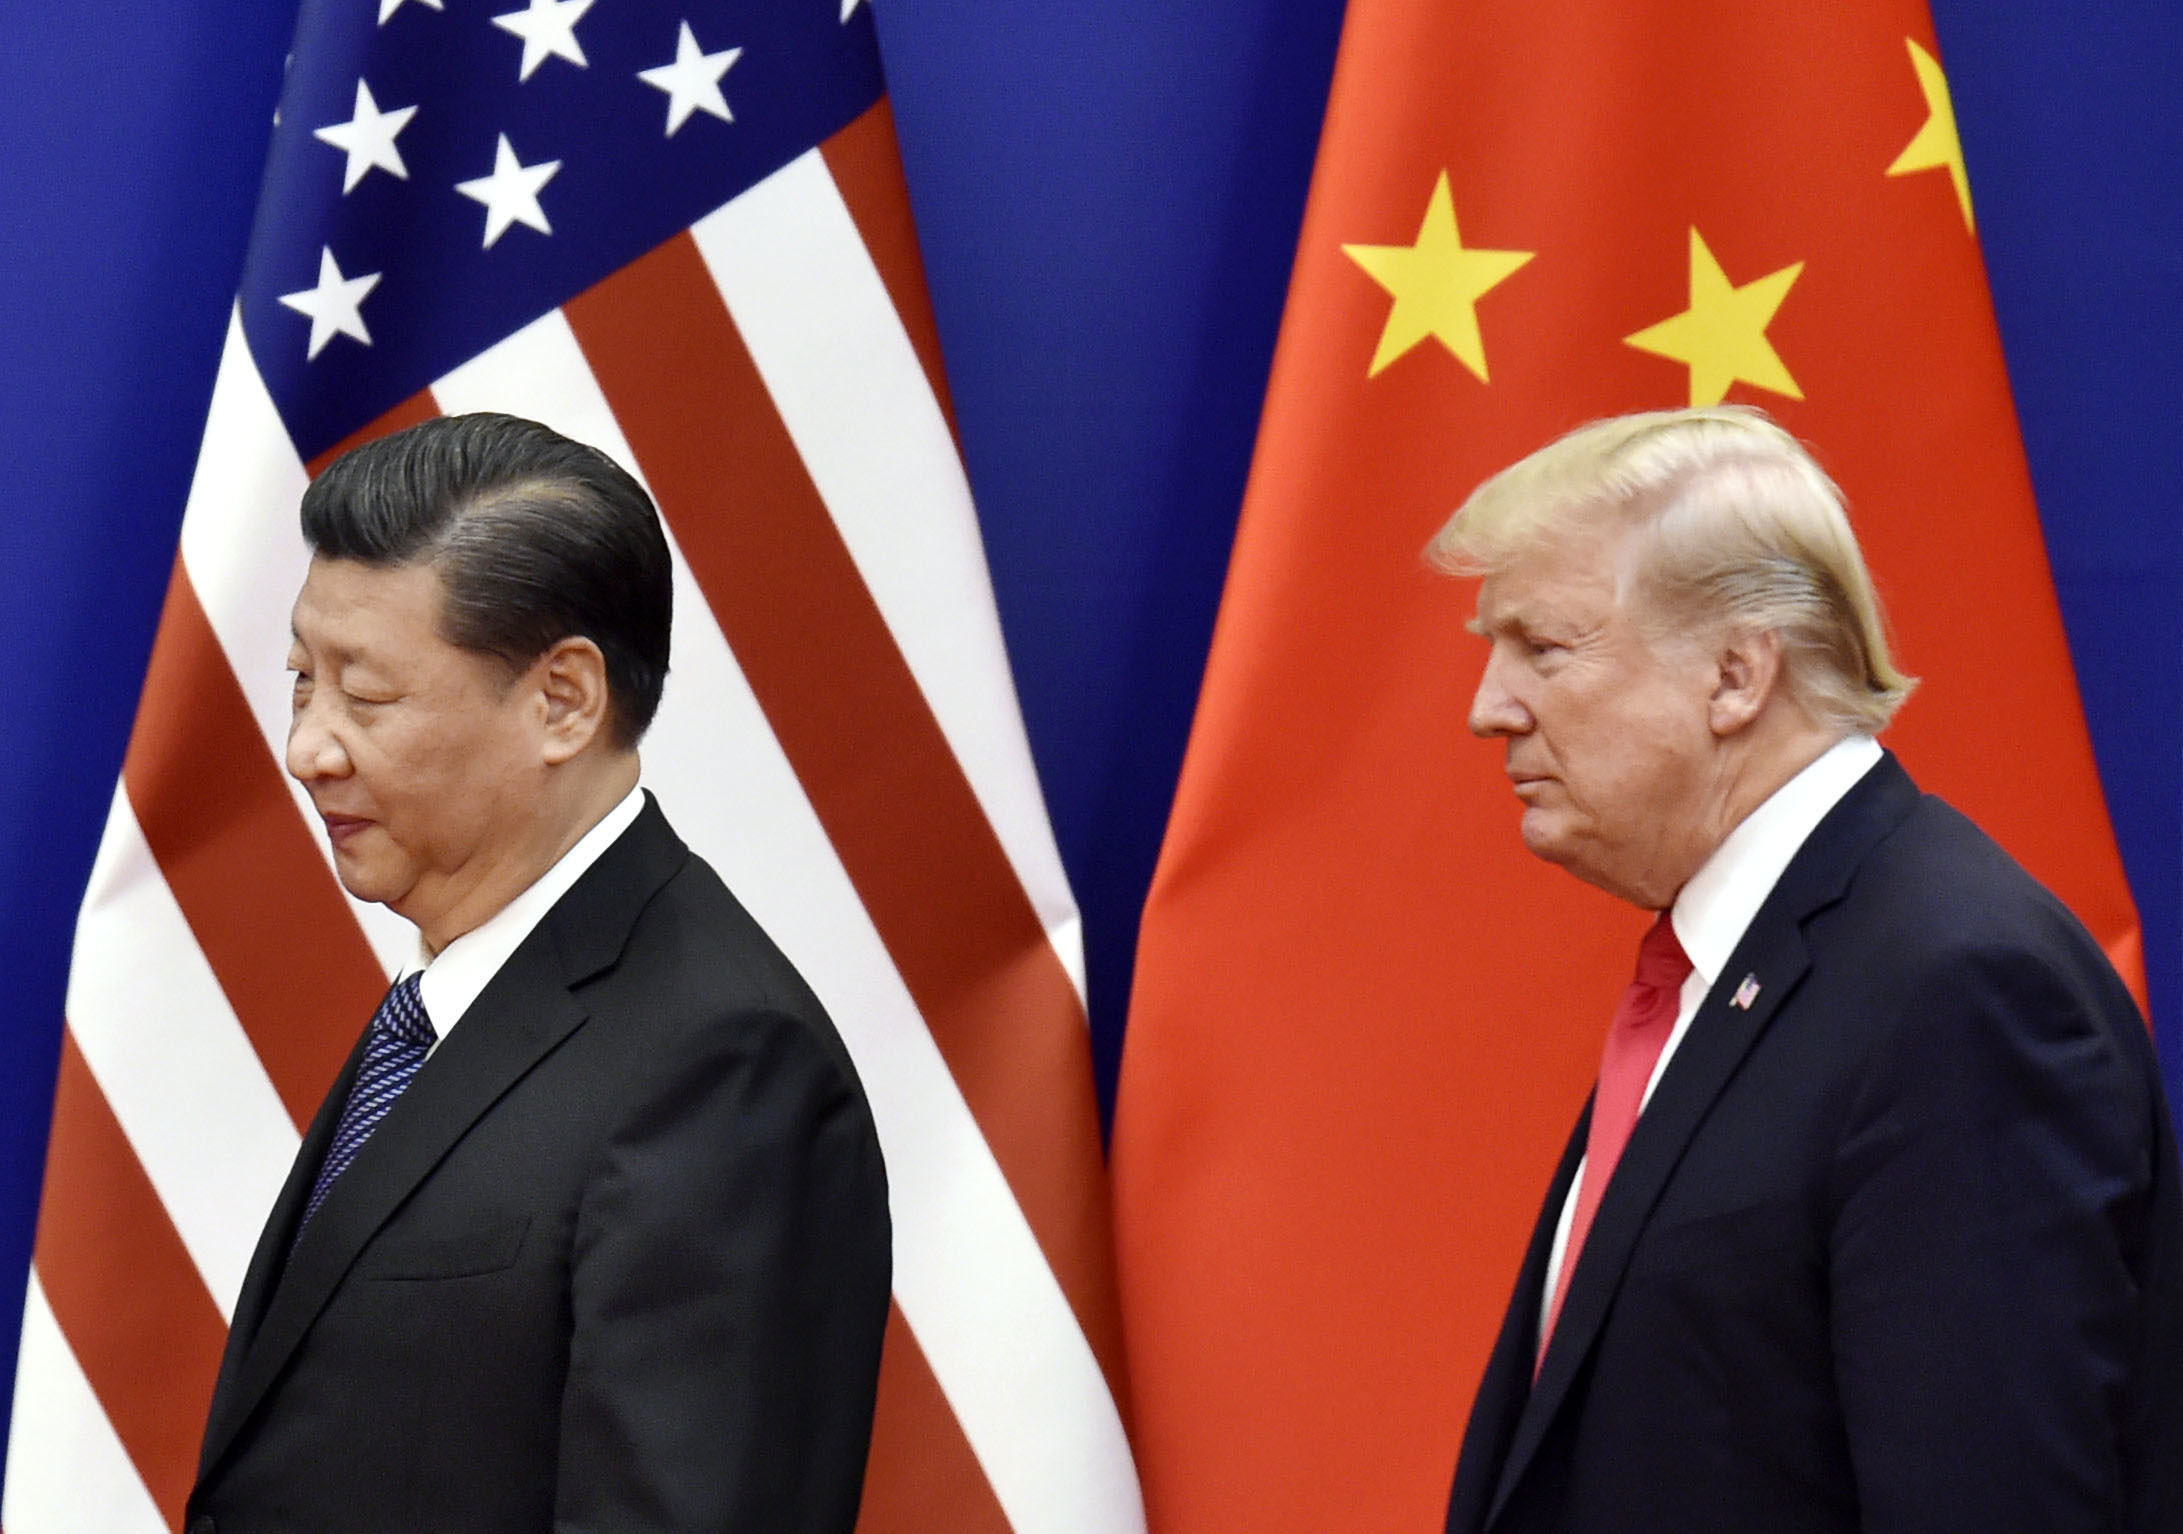 What an Ancient Historian Says About the U.S.-China Clash